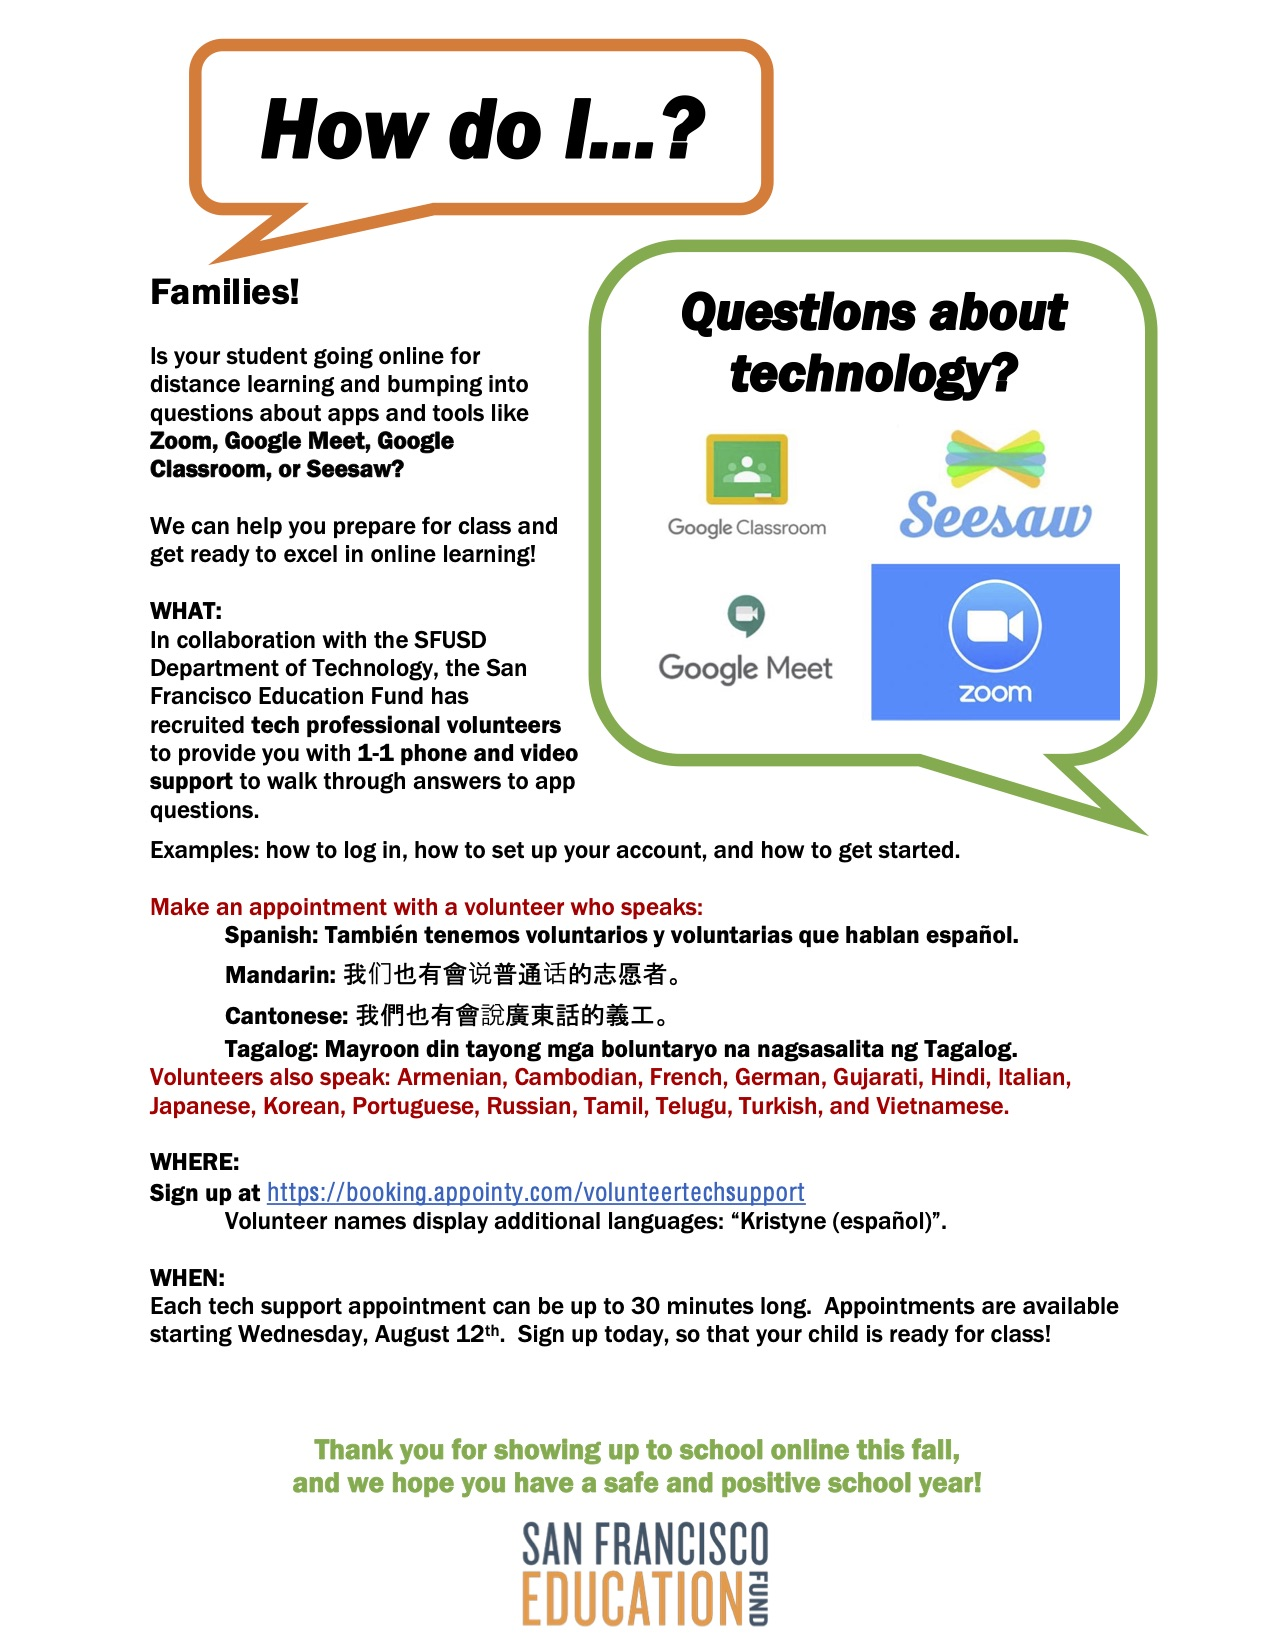 a flyer with a white background detailing information about tech support from Salesforce